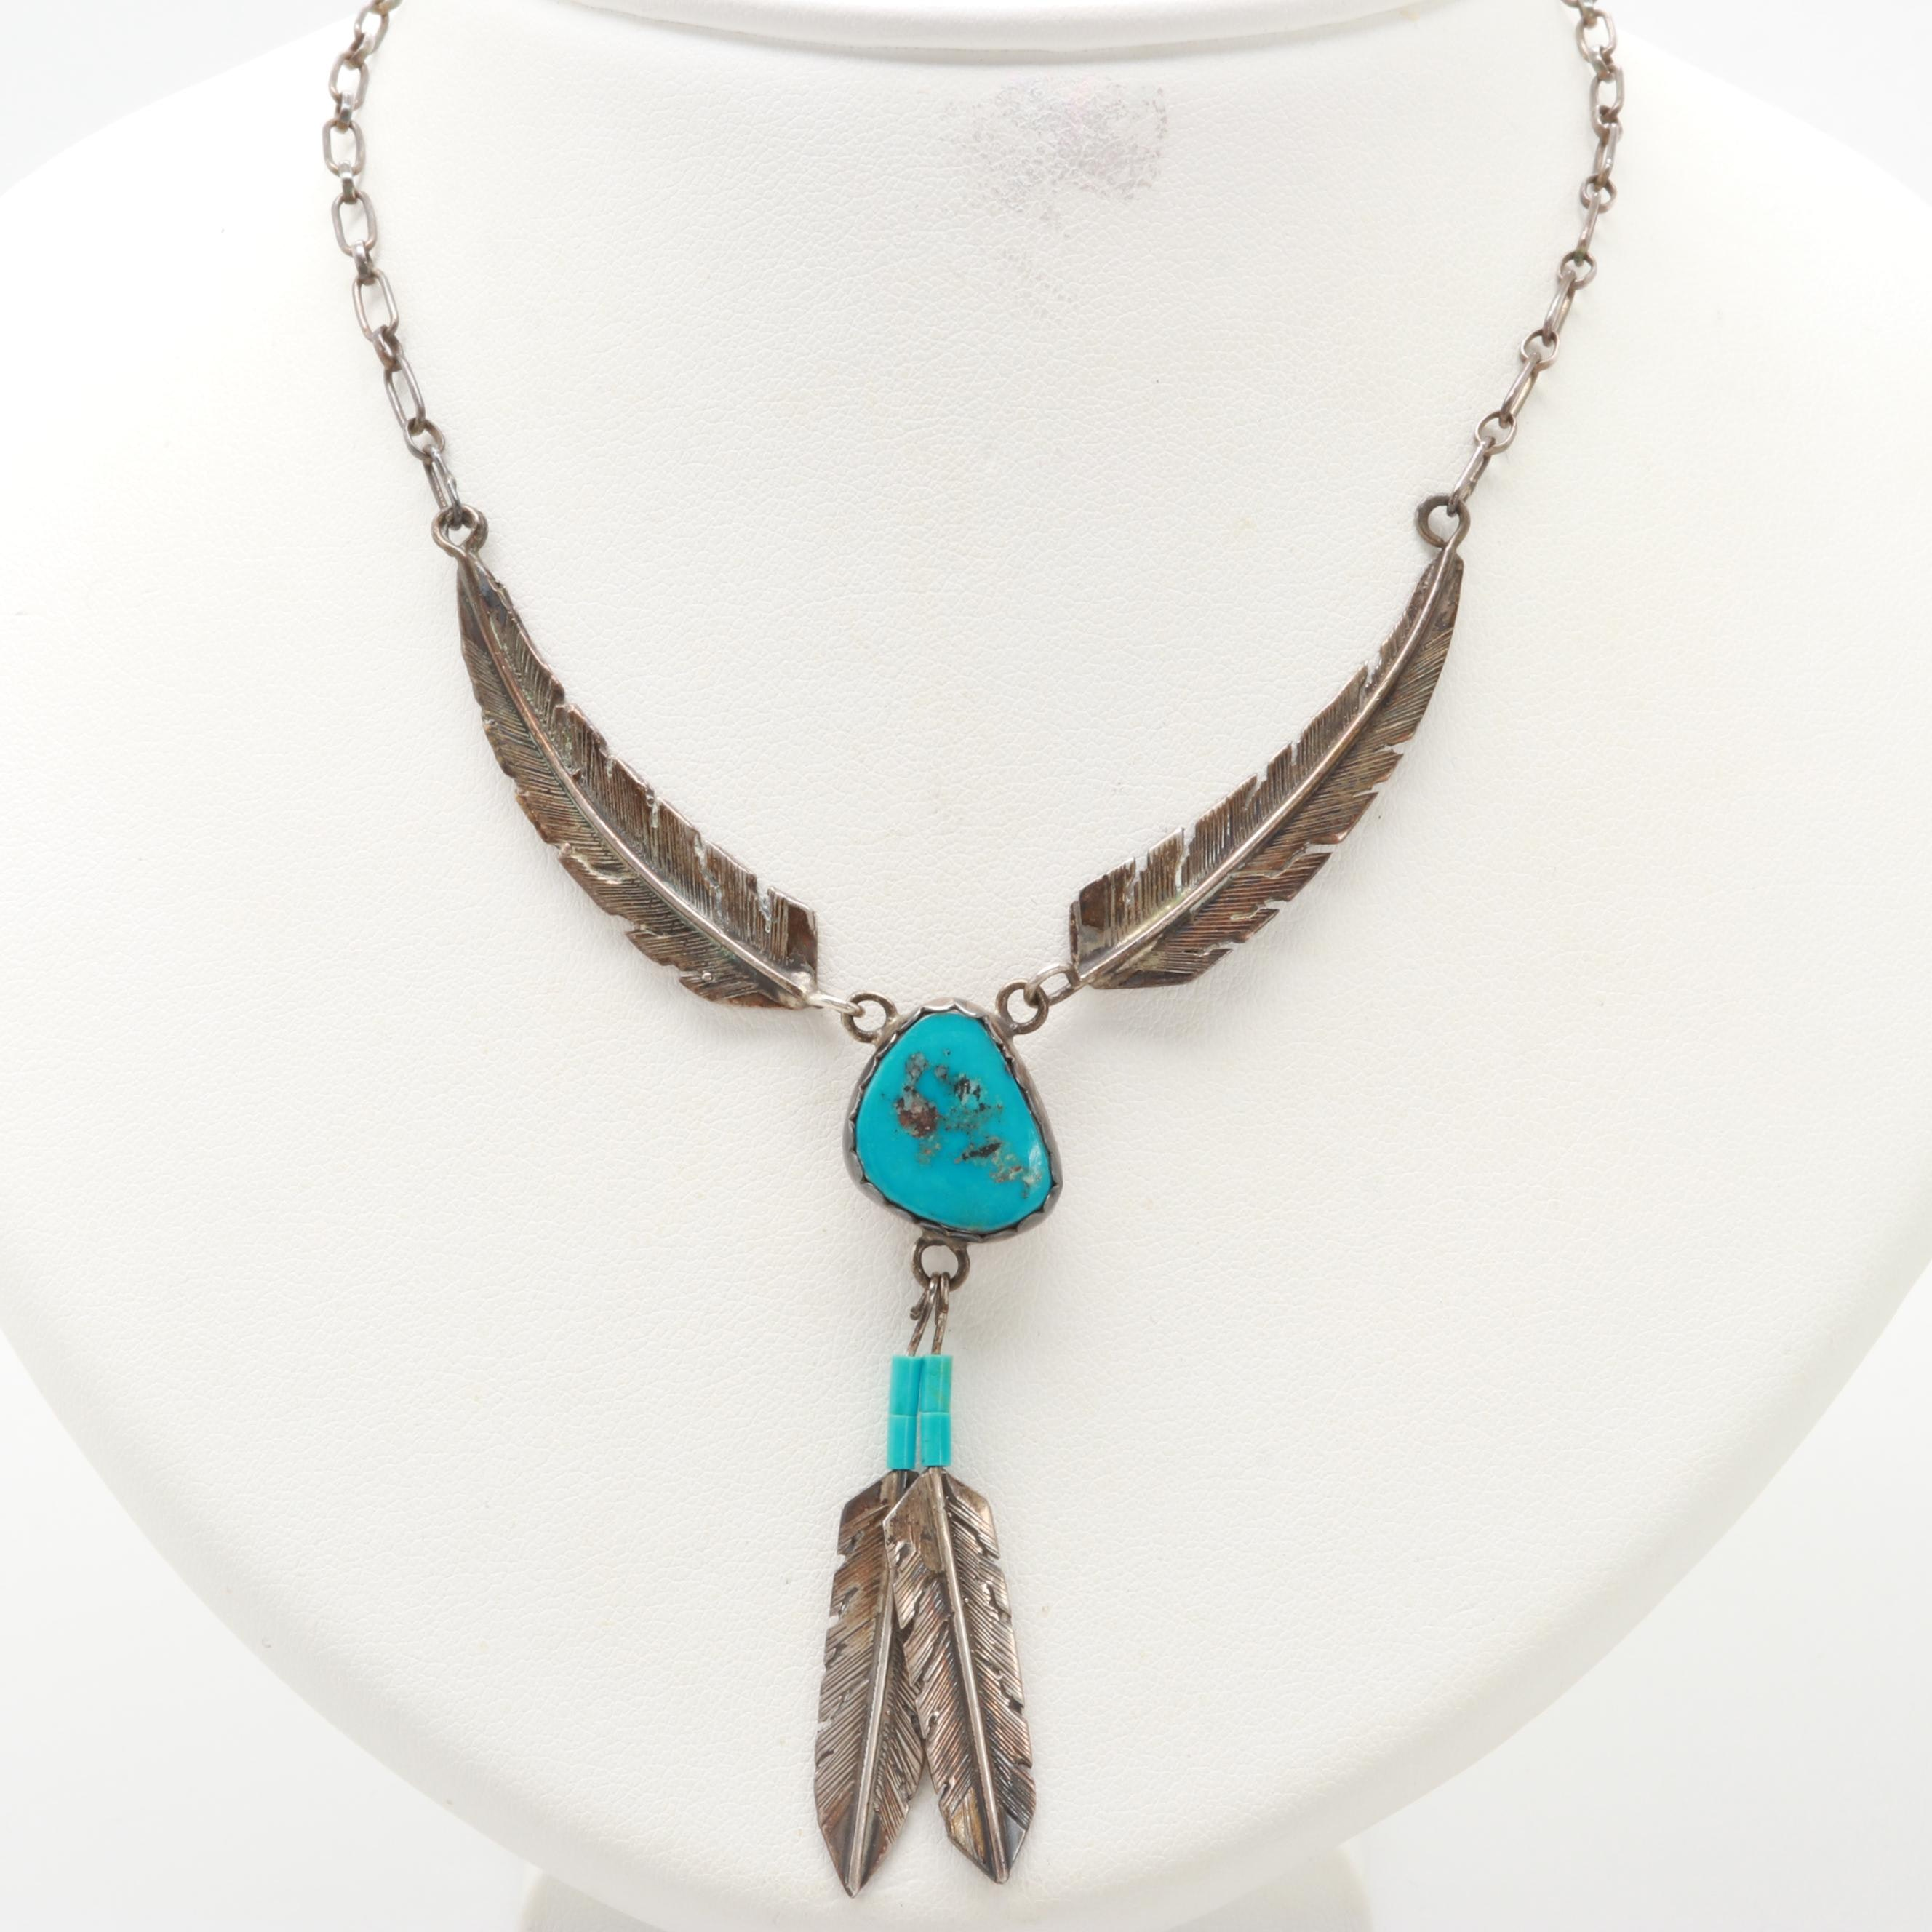 Les Baker Sterling Silver Turquoise and Imitation Turquoise Necklace